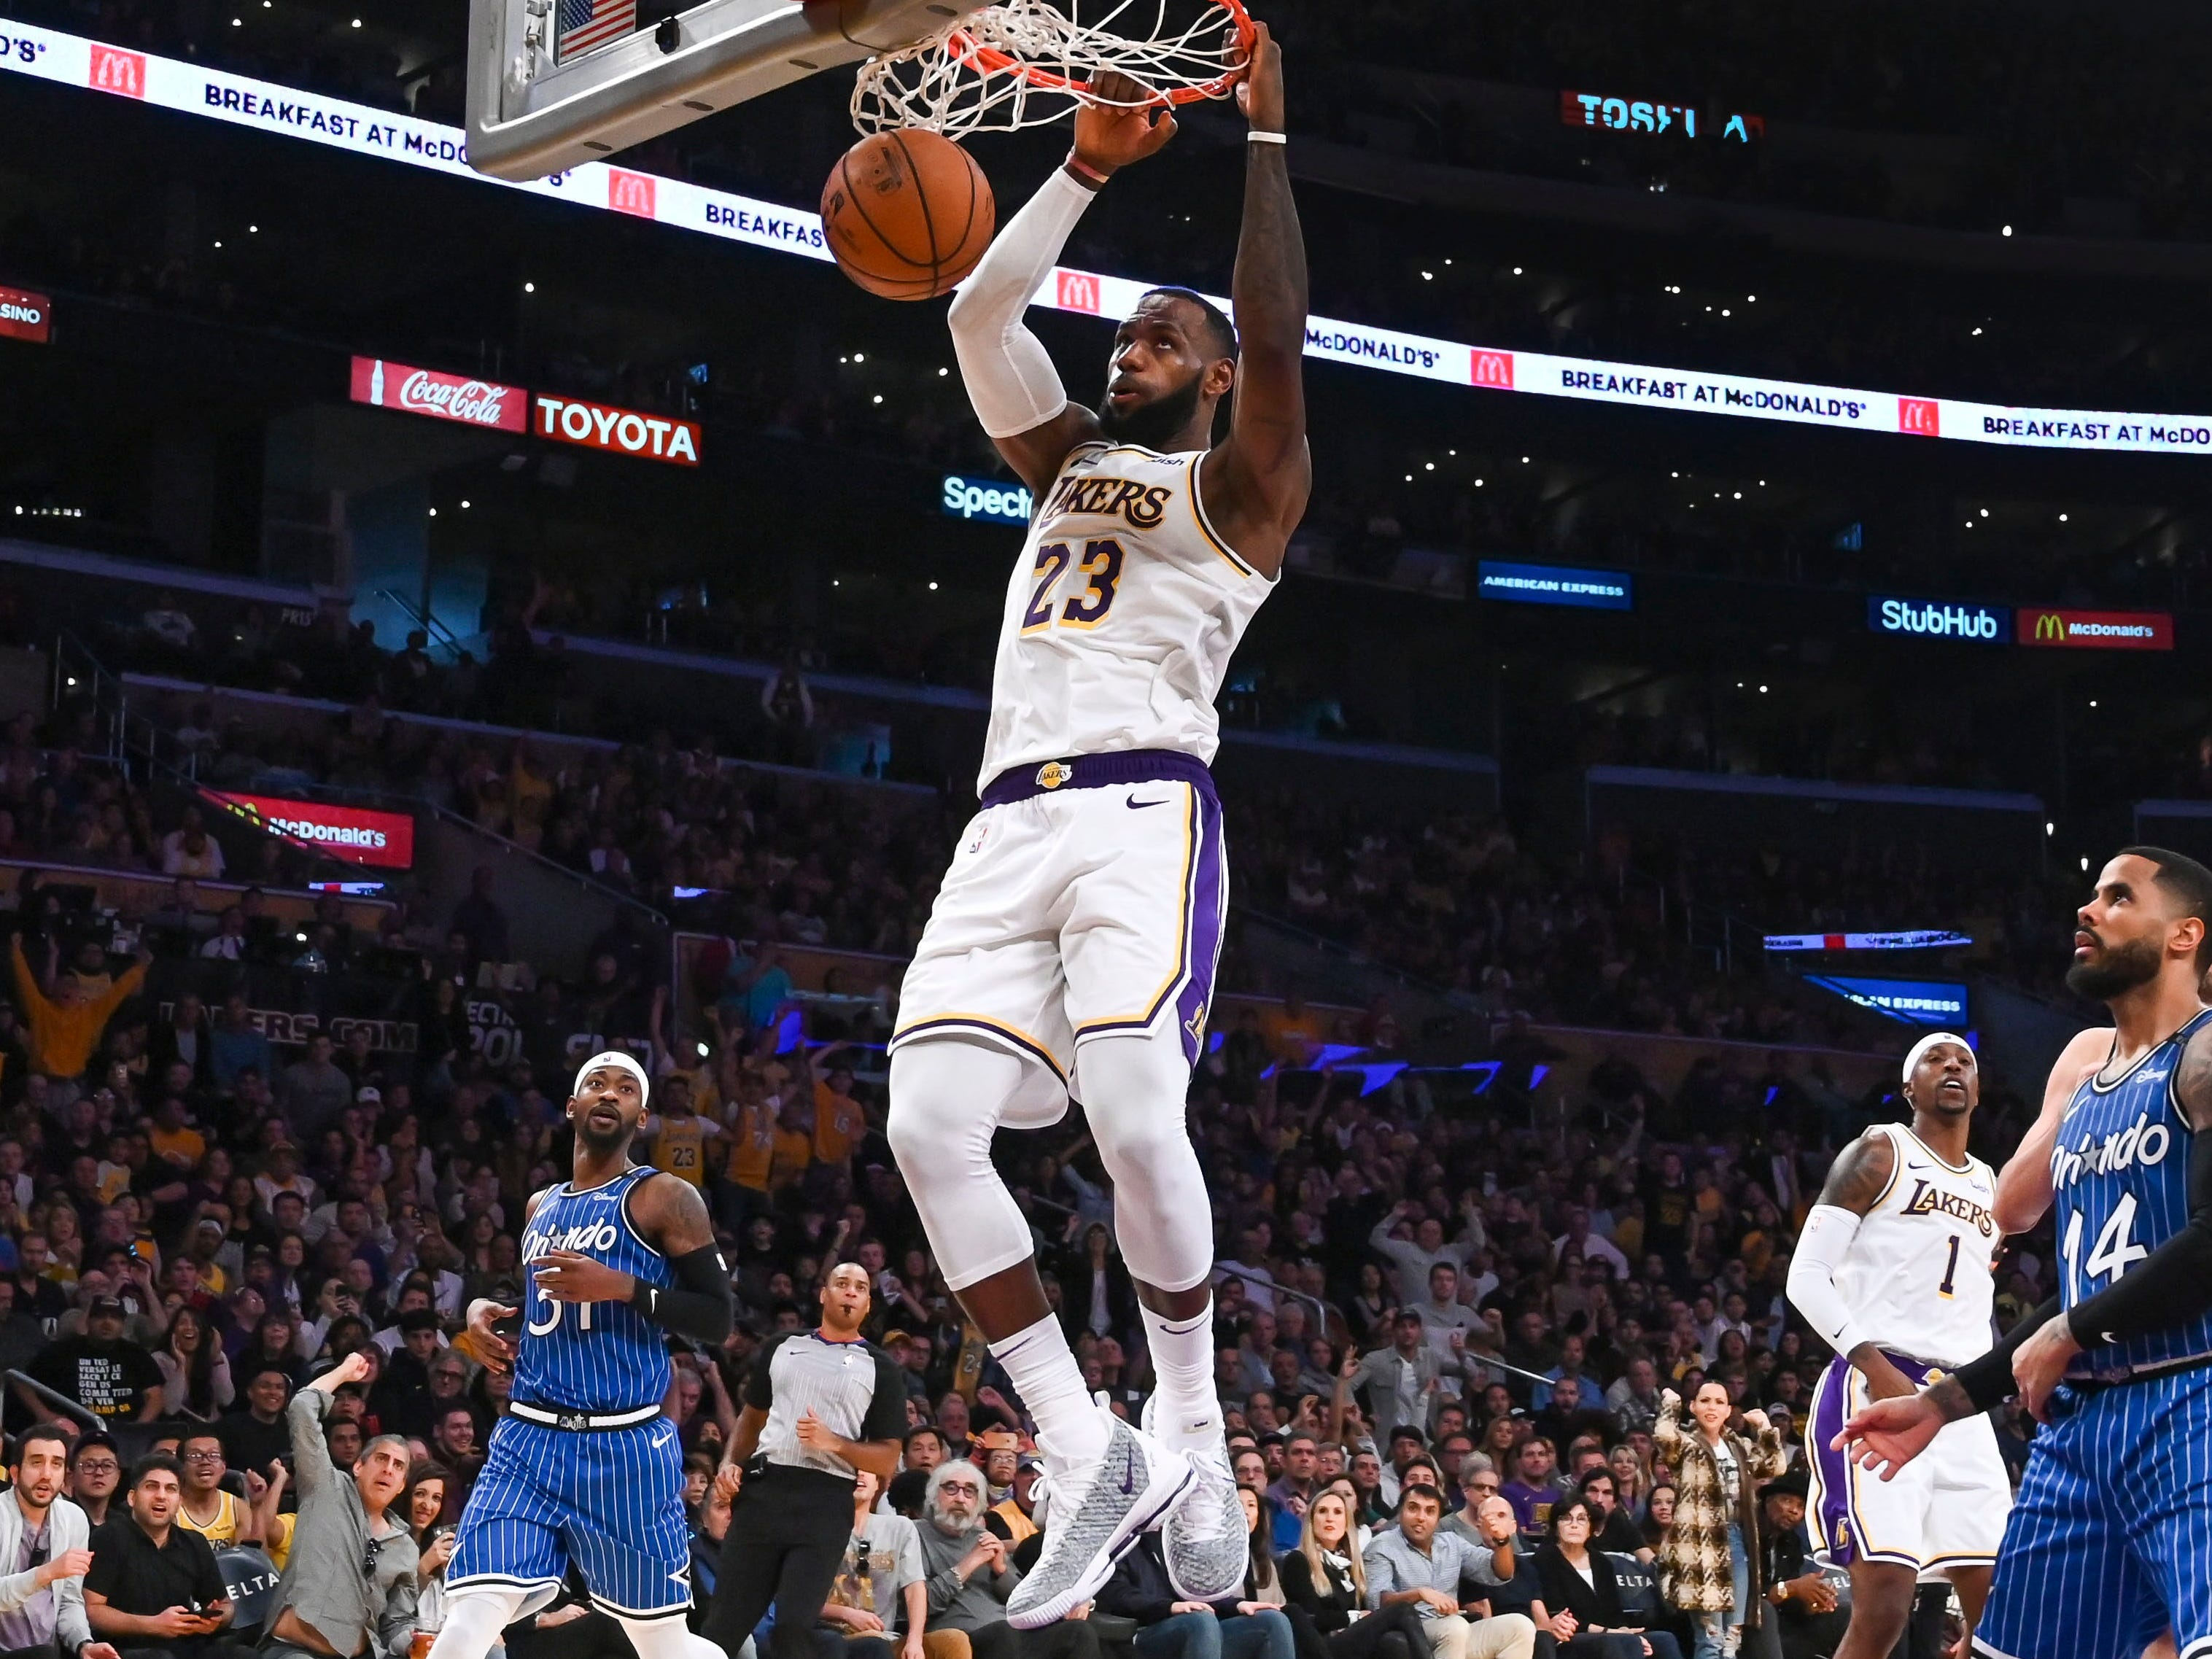 Nov. 25: Lakers forward LeBron James drives and finishes with the two-handed slam against the Magic.